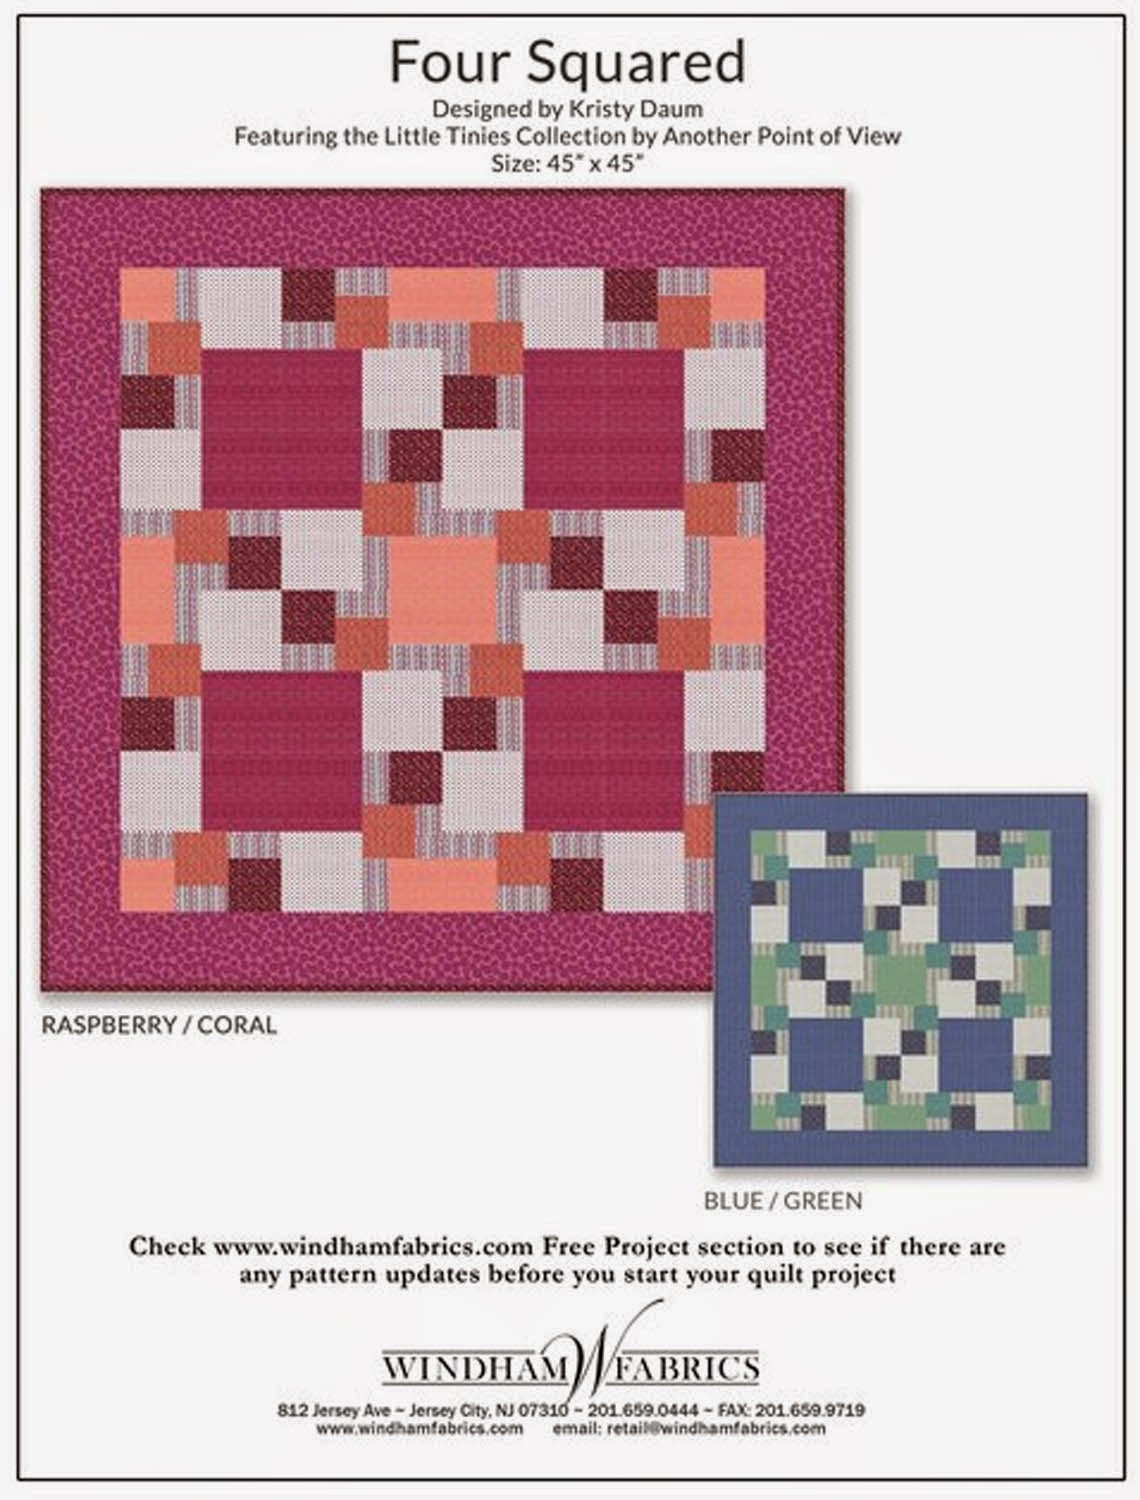 FOUR SQUARED Quilt Pattern // Kristy Daum for Windham Fabrics